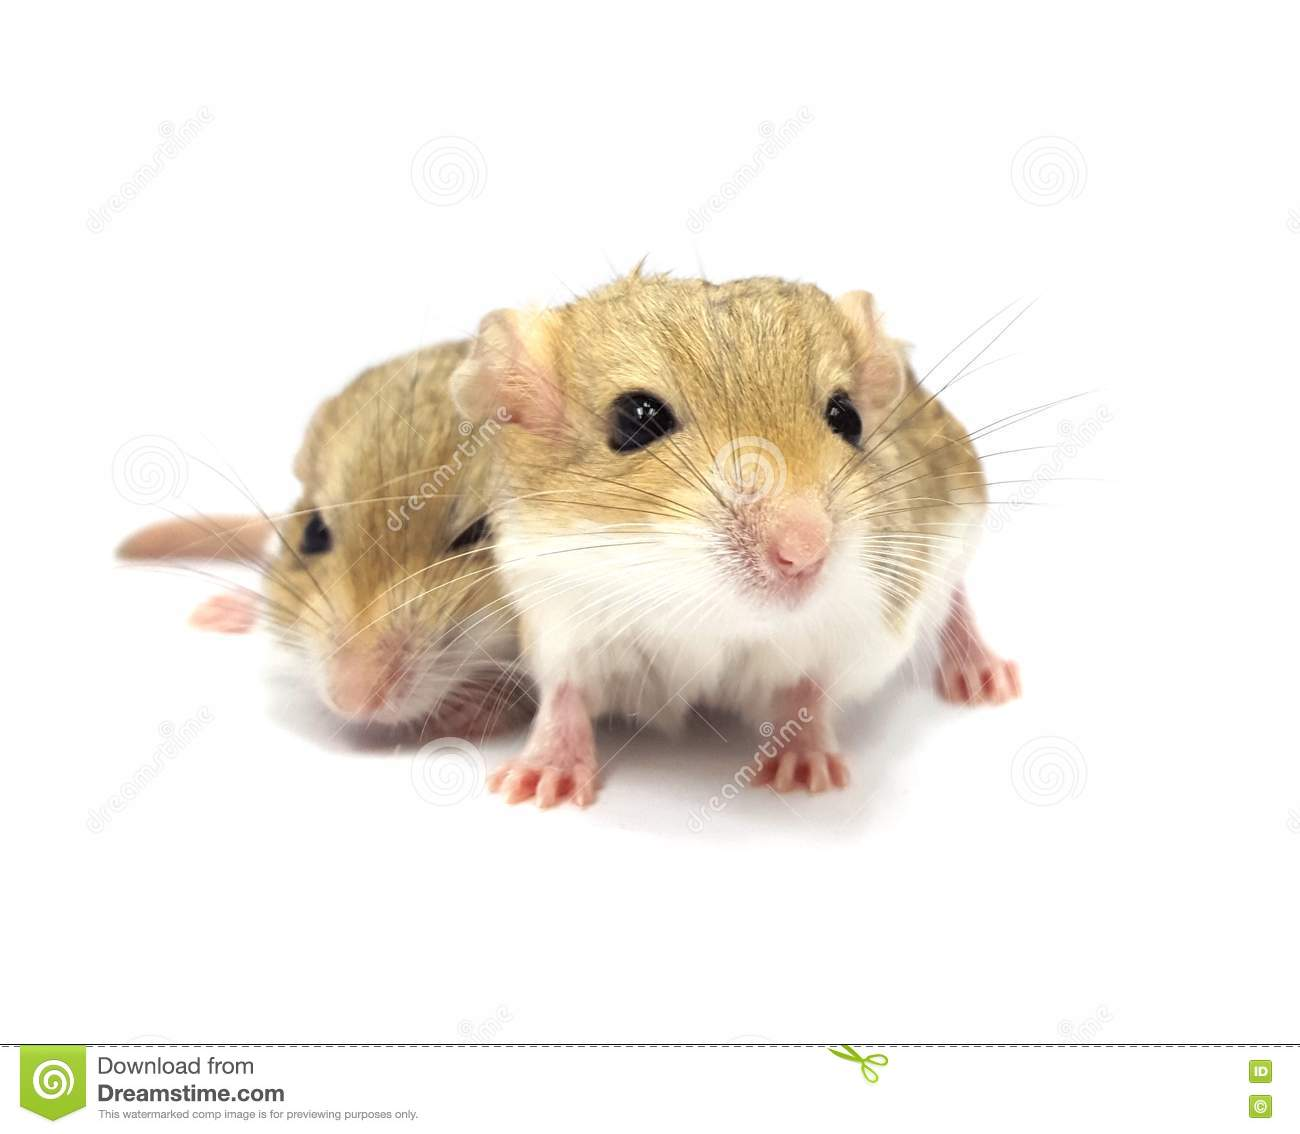 fat tail gerbil rodent pet isolated stock photo - image of rodent